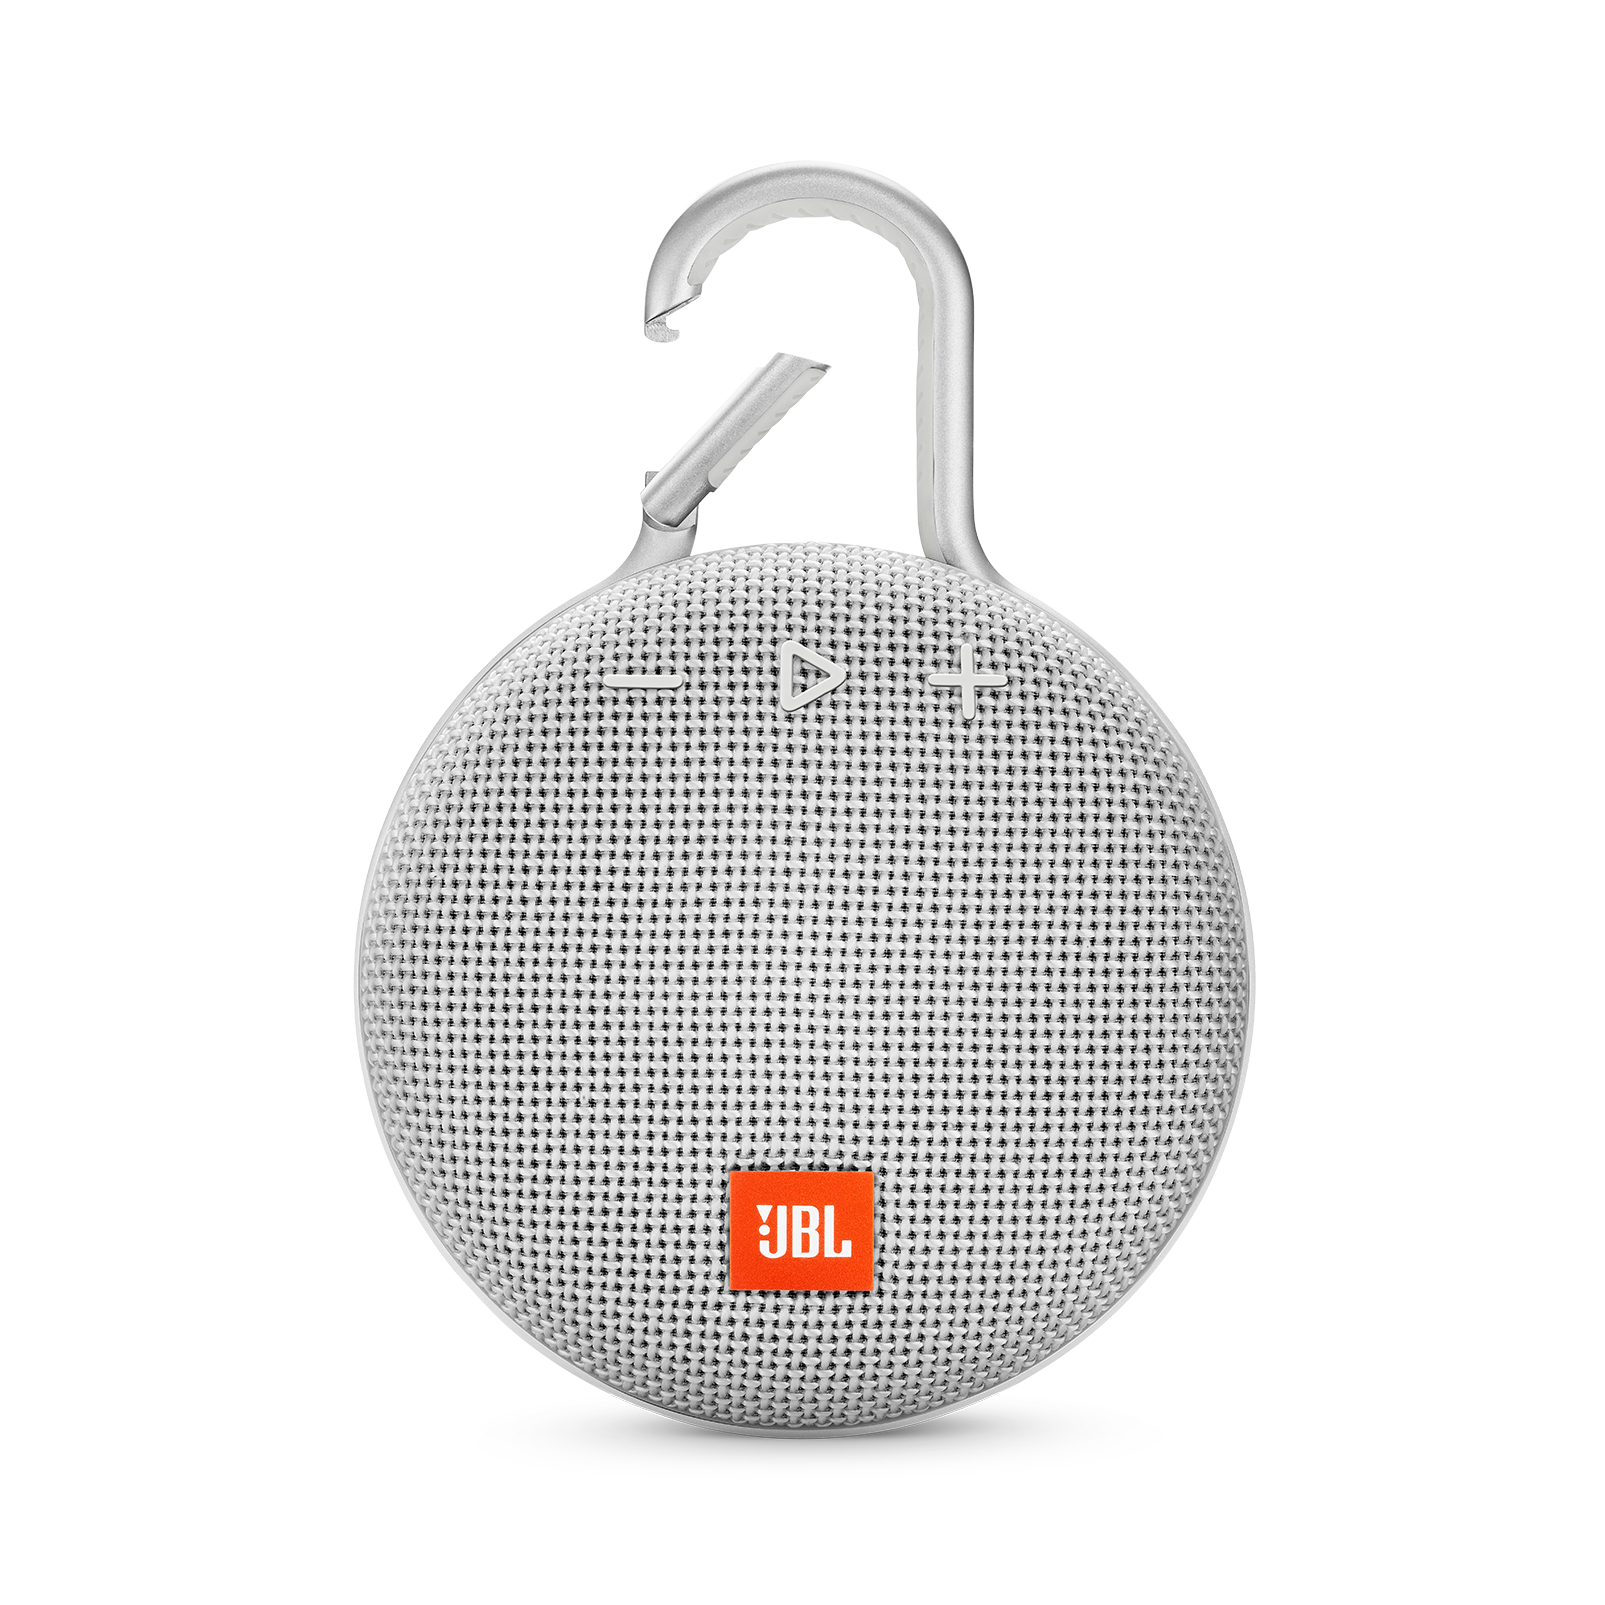 JBL CLIP 3 - Steel White - Portable Bluetooth® speaker - Front